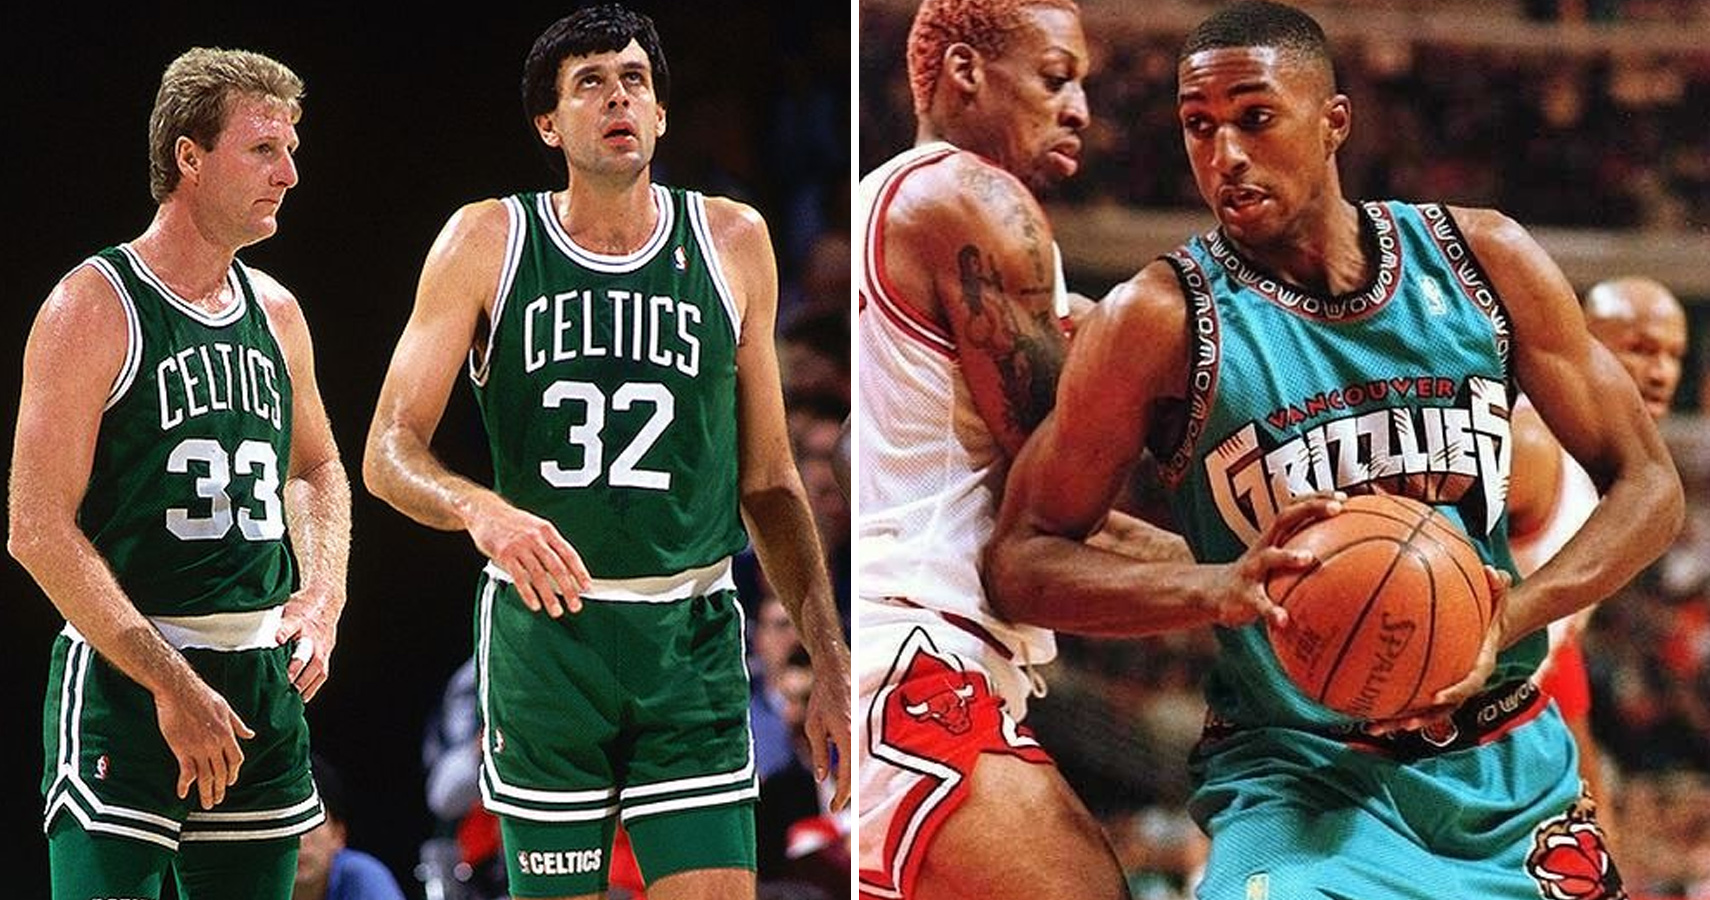 The 8 Best And 7 Worst NBA Frontcourts of All Time